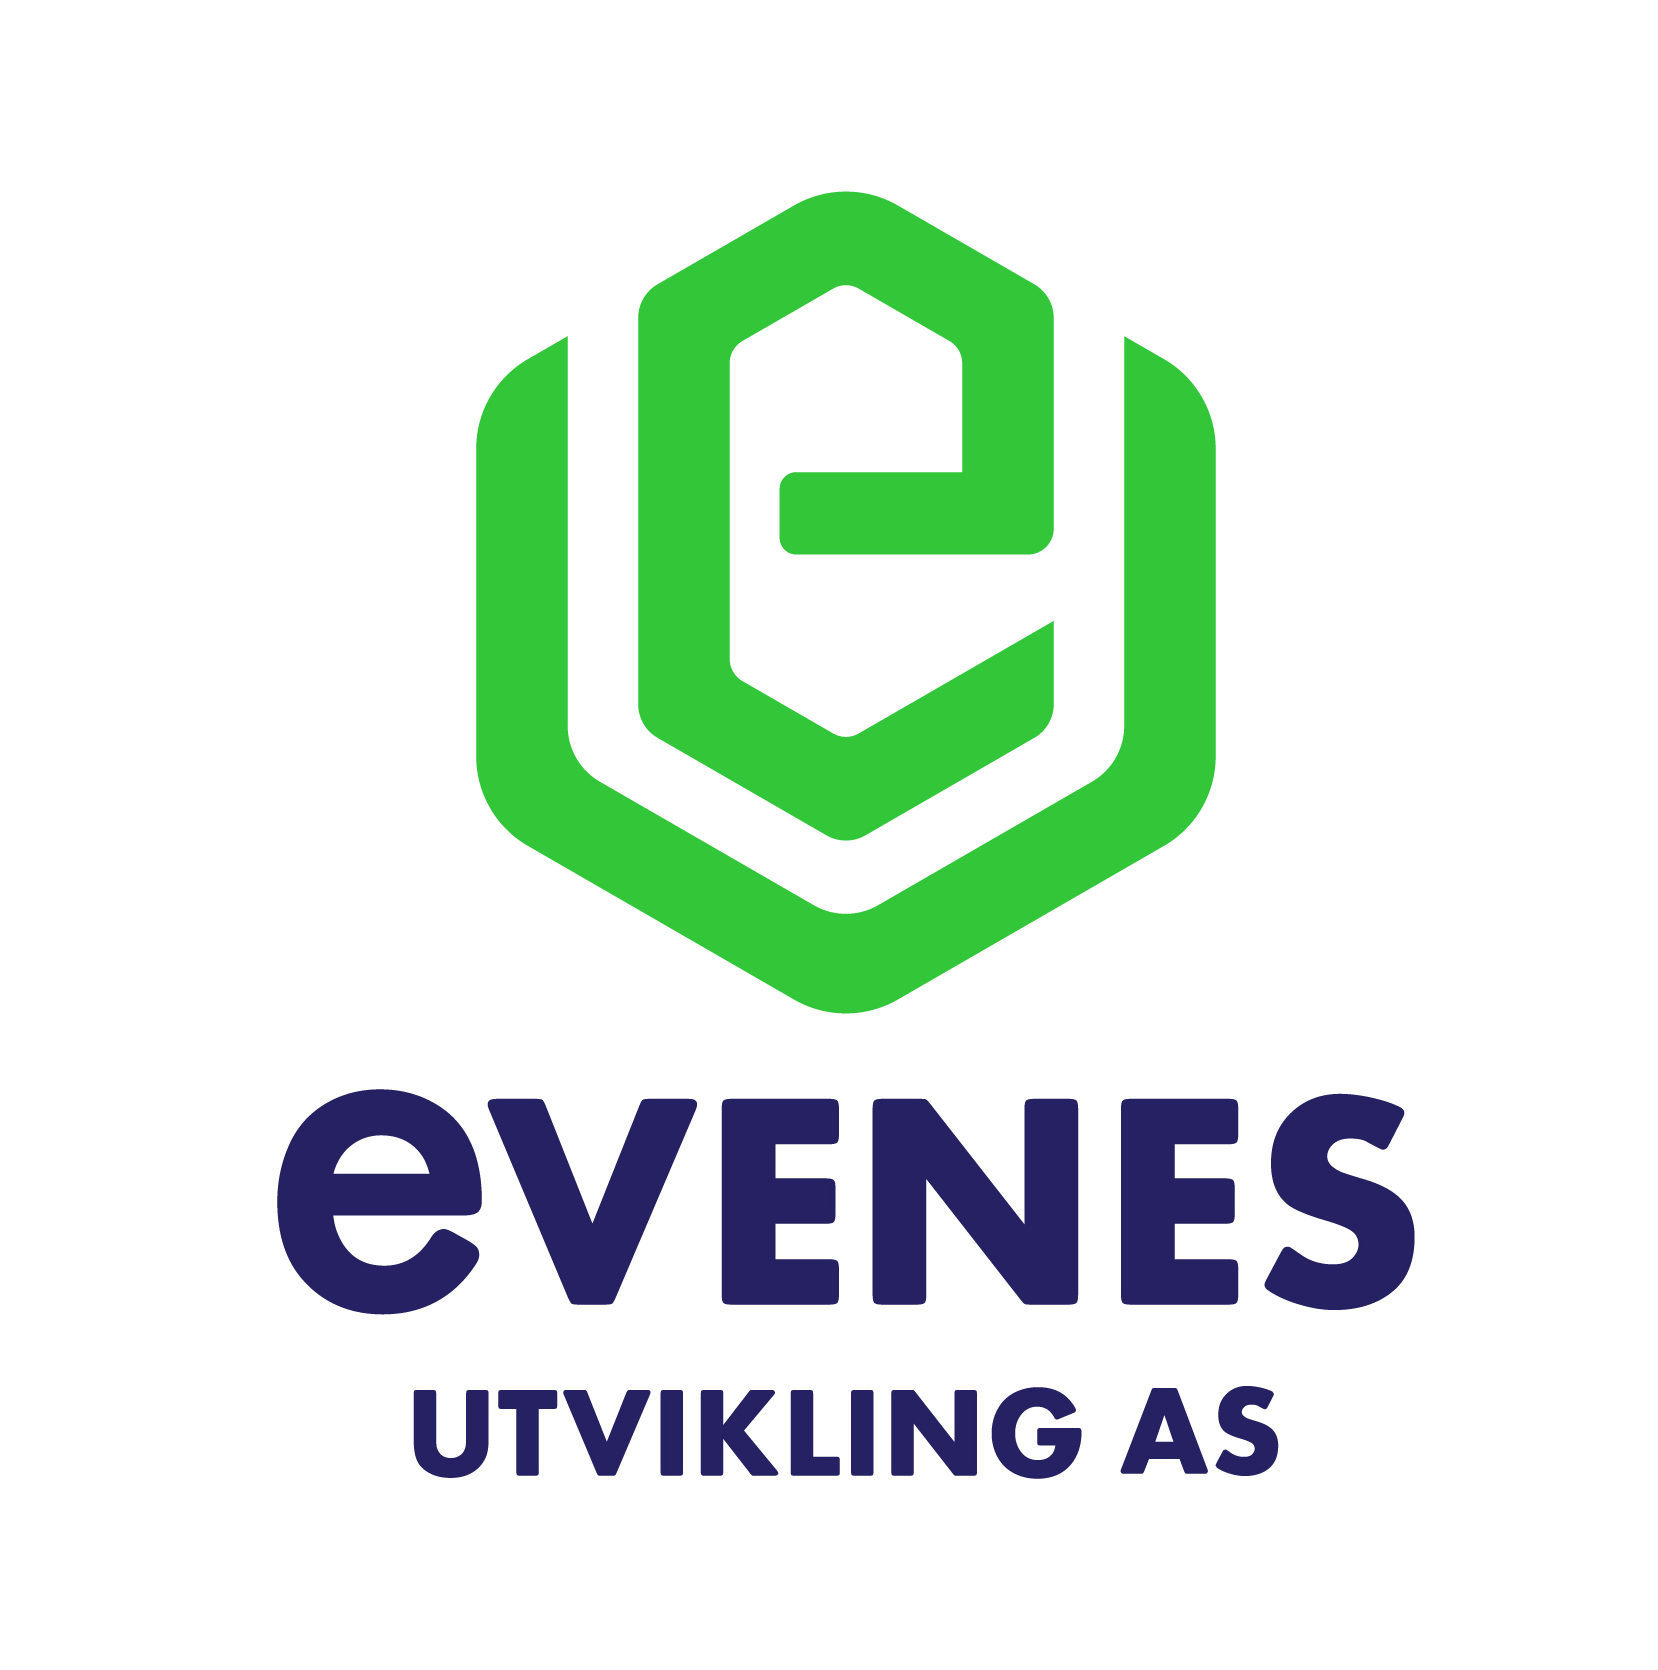 Evenes Utvikling AS